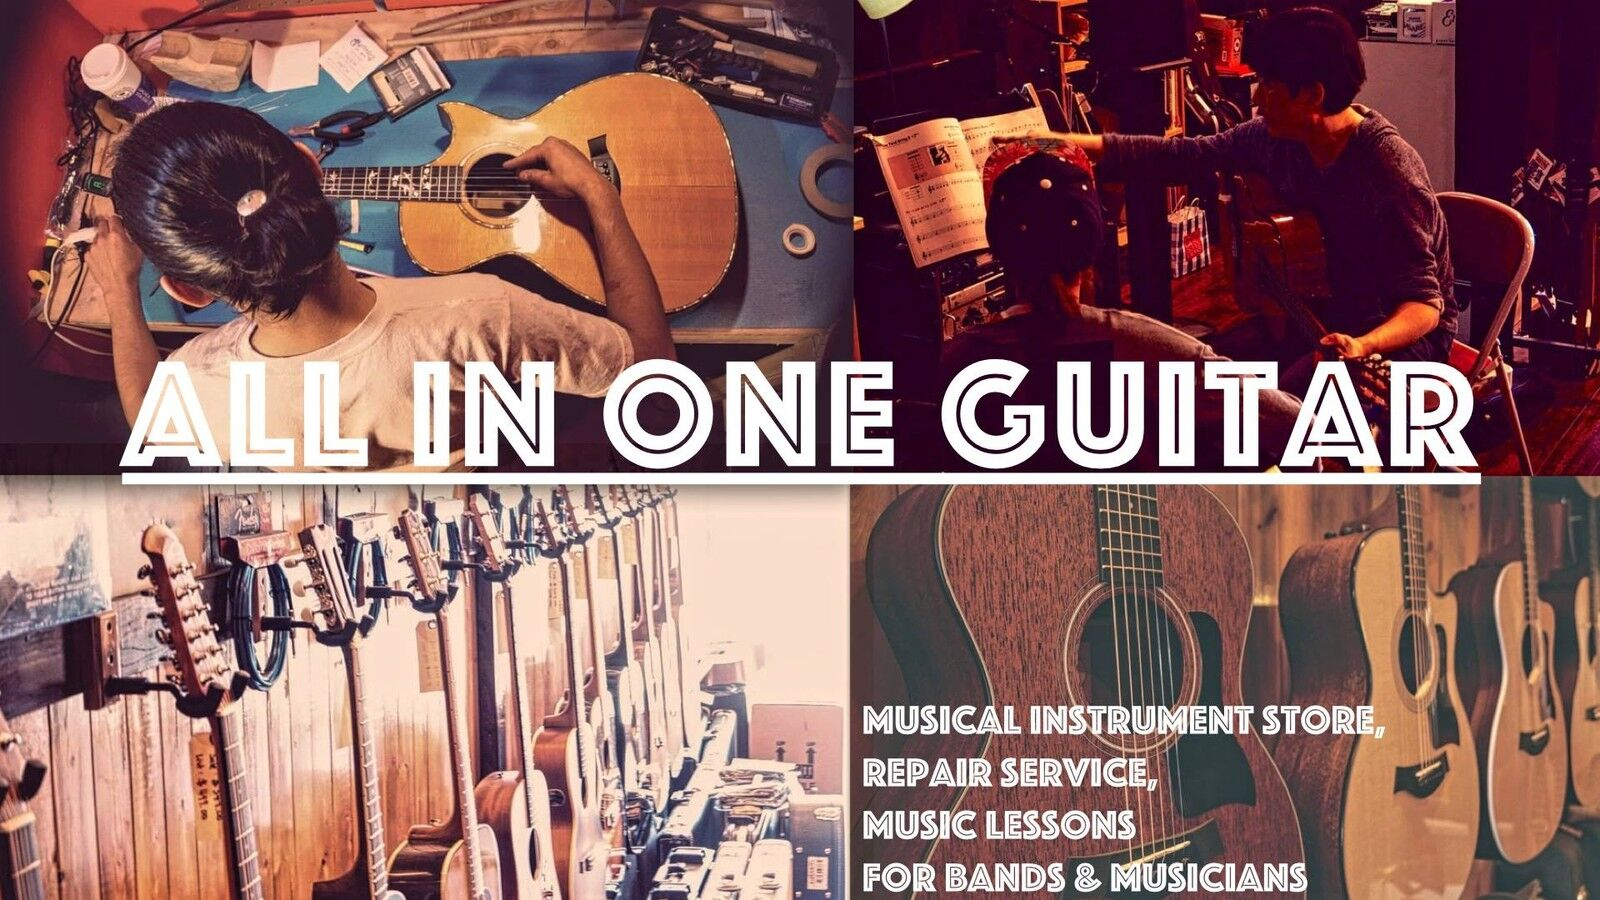 All In One Guitar